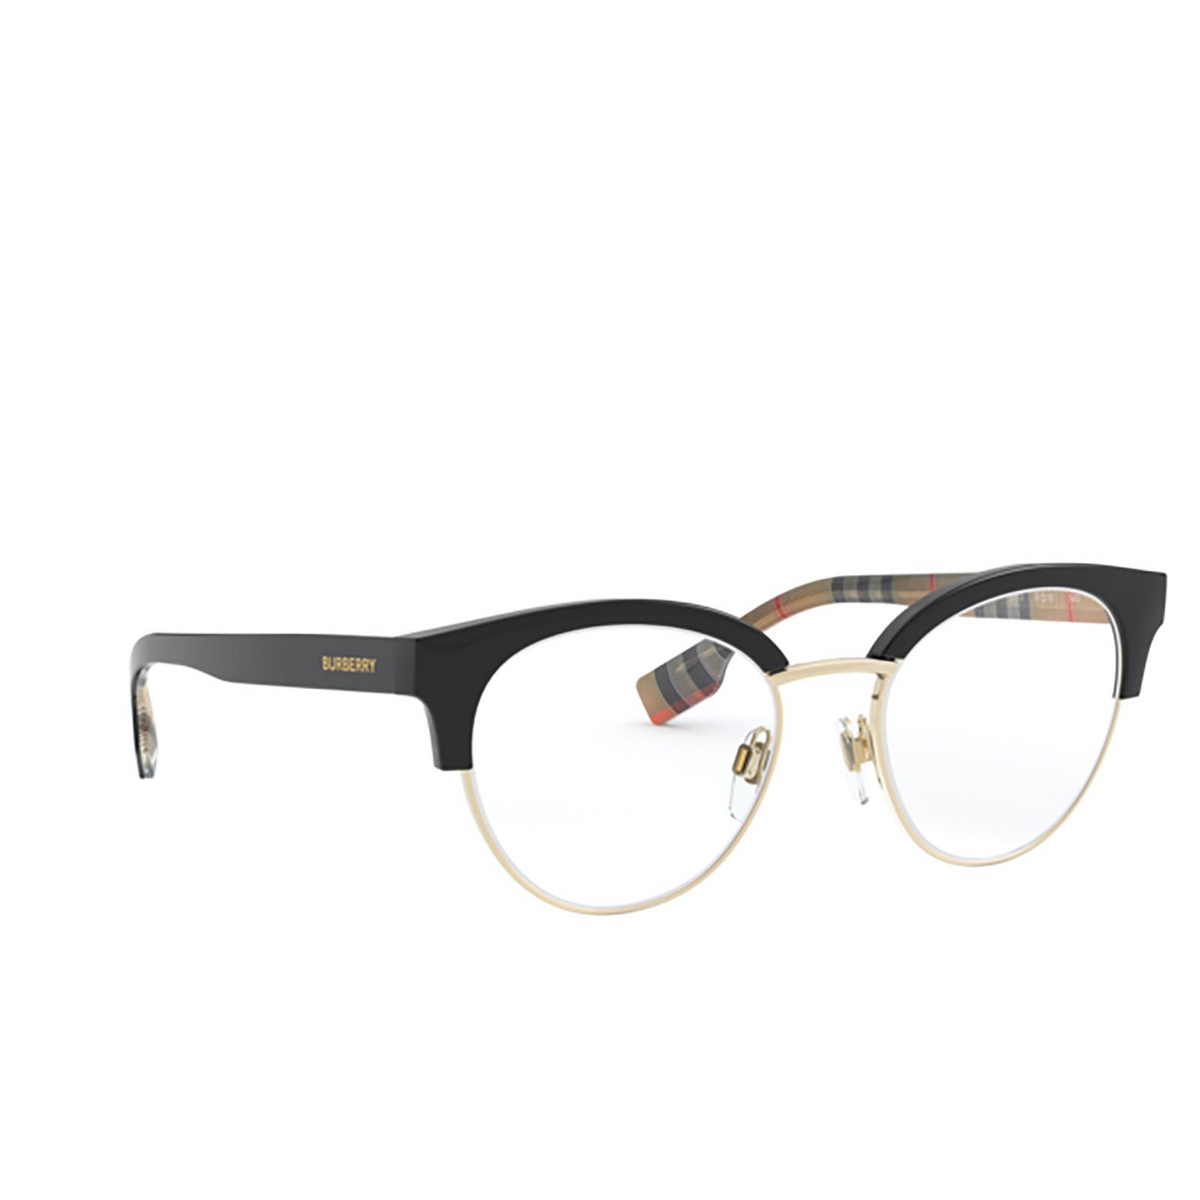 Burberry® Round Eyeglasses: Birch BE2316 color Black / Pale Gold 3773 - three-quarters view.